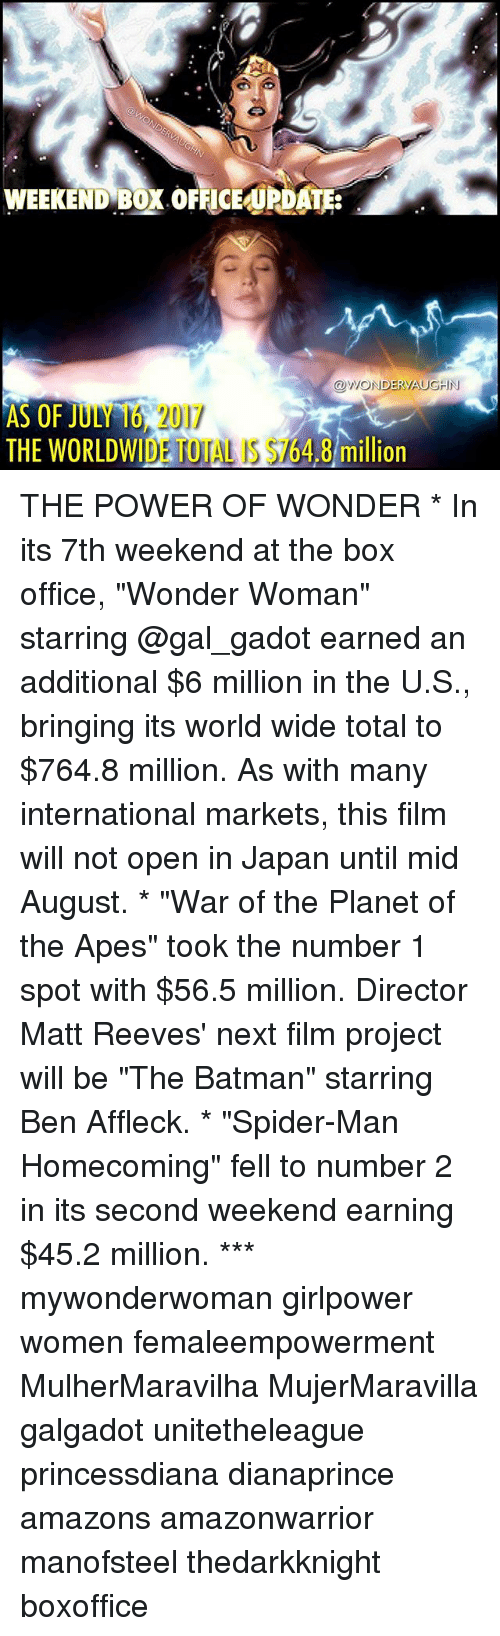 "Batman, Boxing, and Memes: WEEKEND BOX OFFICEUPDATE:  OWONDERVAUGHIN  AS OF JULY 16 2017  THE WORLDWIDE TOTAL IS $164.8 mill  THE WORLDWIDE TOTAL S $764.8 million  ion THE POWER OF WONDER * In its 7th weekend at the box office, ""Wonder Woman"" starring @gal_gadot earned an additional $6 million in the U.S., bringing its world wide total to $764.8 million. As with many international markets, this film will not open in Japan until mid August. * ""War of the Planet of the Apes"" took the number 1 spot with $56.5 million. Director Matt Reeves' next film project will be ""The Batman"" starring Ben Affleck. * ""Spider-Man Homecoming"" fell to number 2 in its second weekend earning $45.2 million. *** mywonderwoman girlpower women femaleempowerment MulherMaravilha MujerMaravilla galgadot unitetheleague princessdiana dianaprince amazons amazonwarrior manofsteel thedarkknight boxoffice"